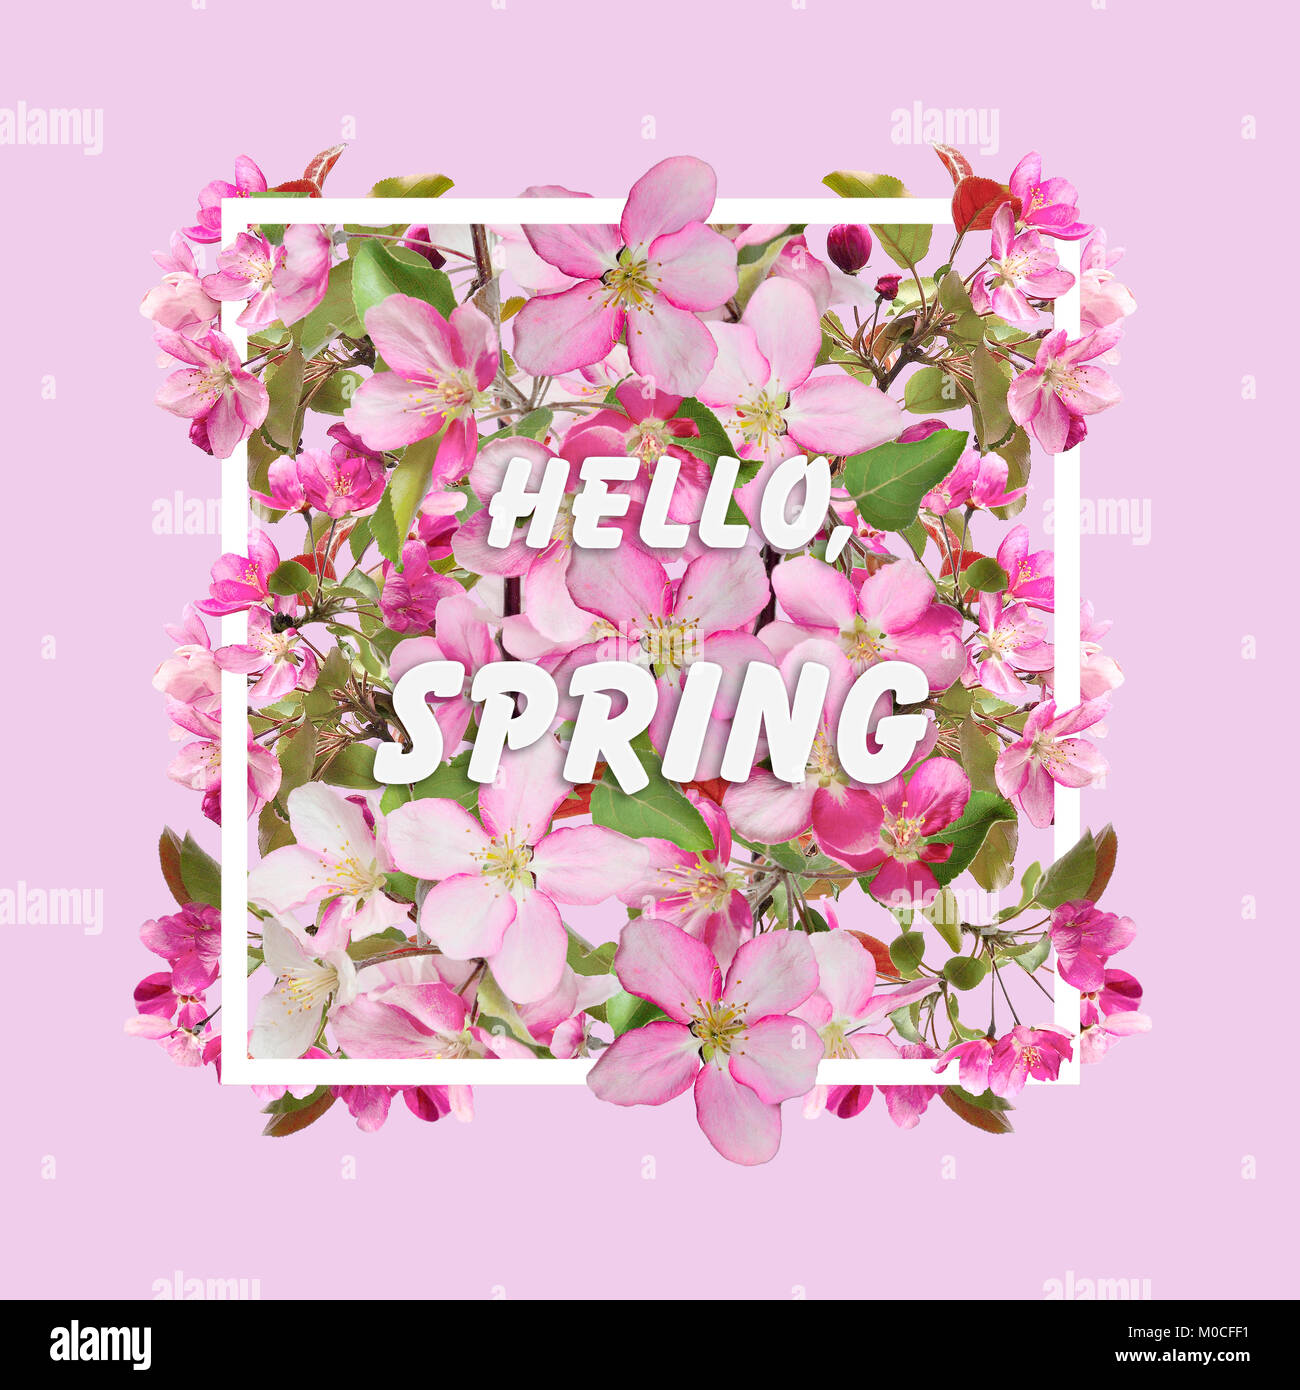 Floral Spring Design With Cherry Blossom Flowers In The White Stock